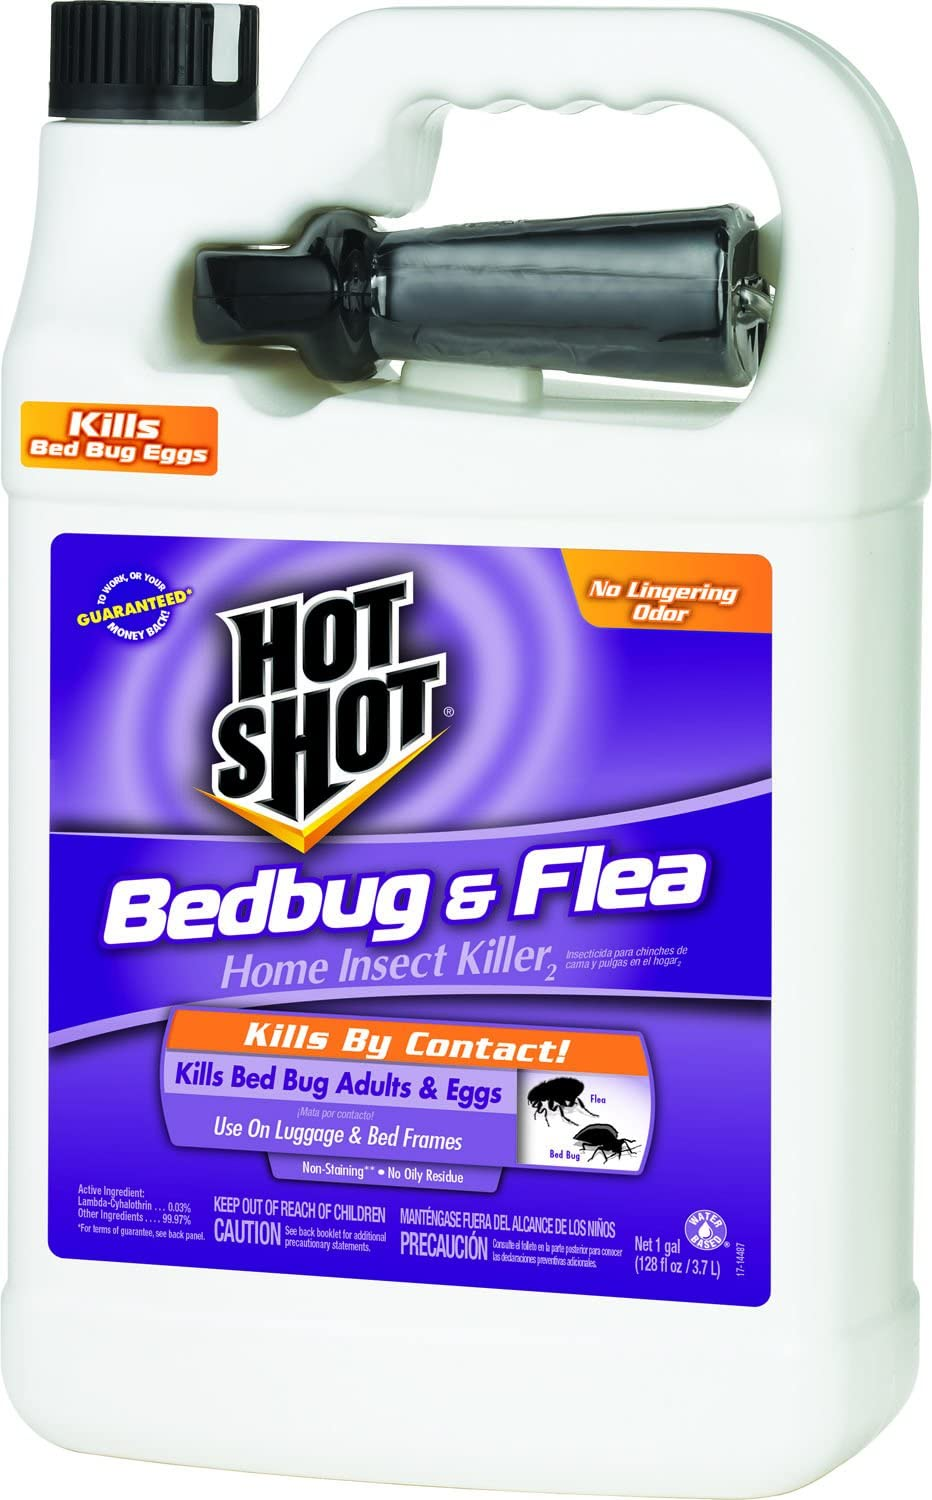 Hot Shot Bedbug & Flea Home Insect Killer2 (Ready-to-Use) (HG-96190) (Pack of 4)